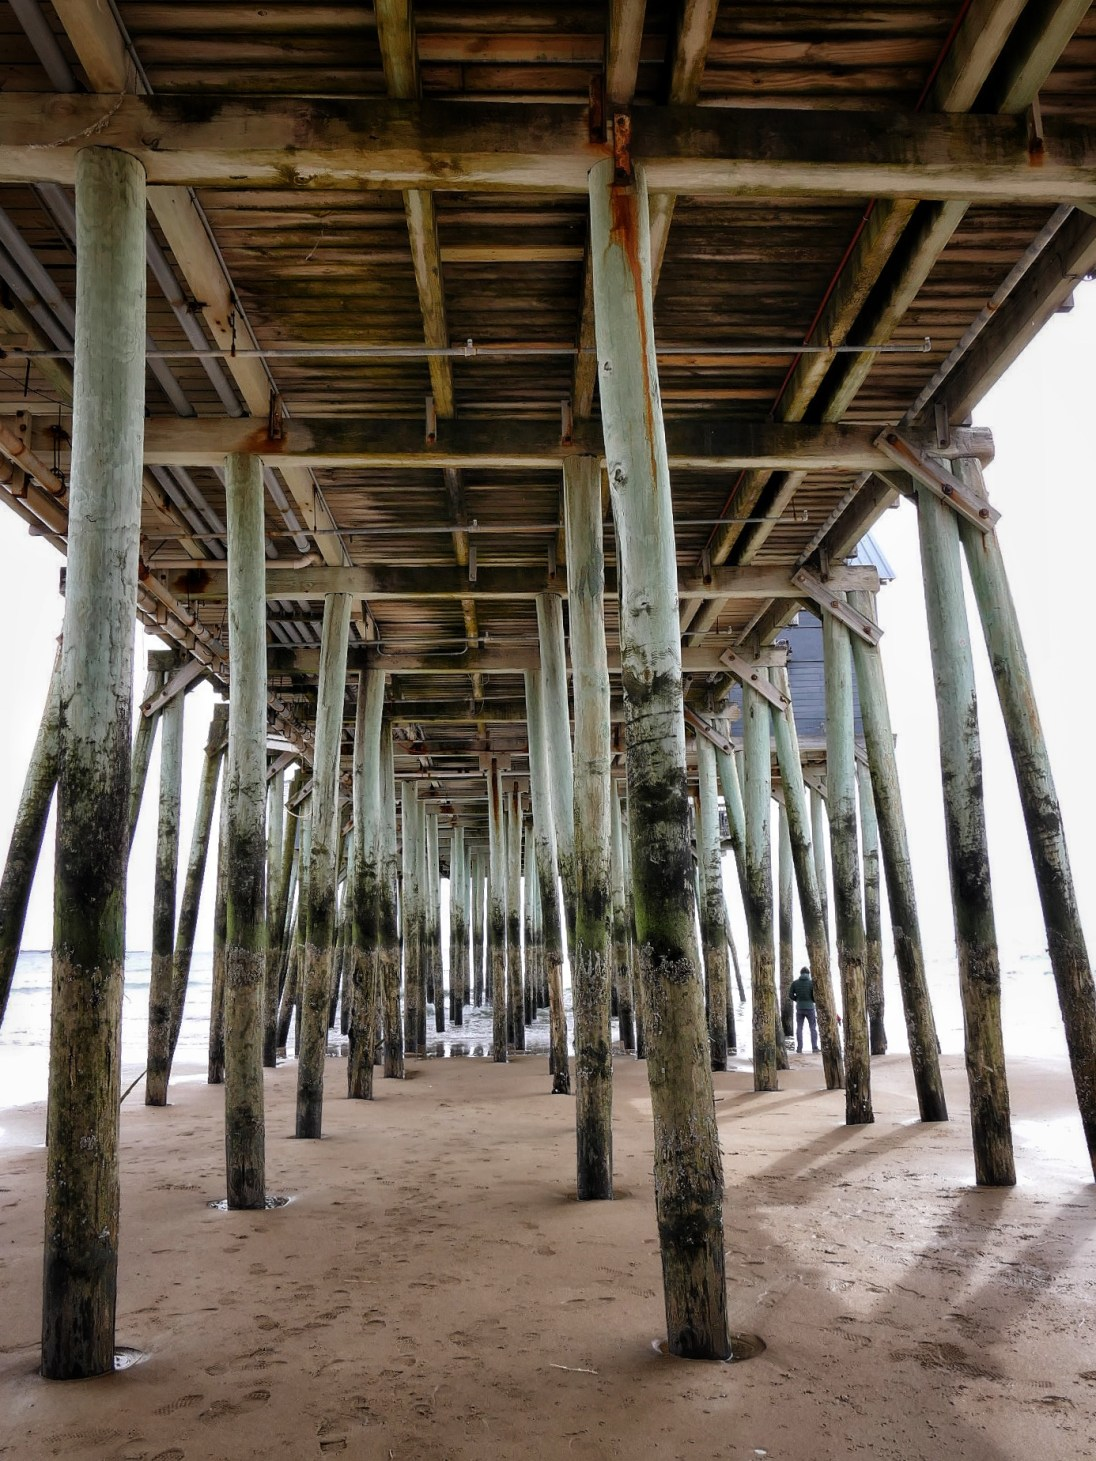 the underside of a large wooden pier at low tide